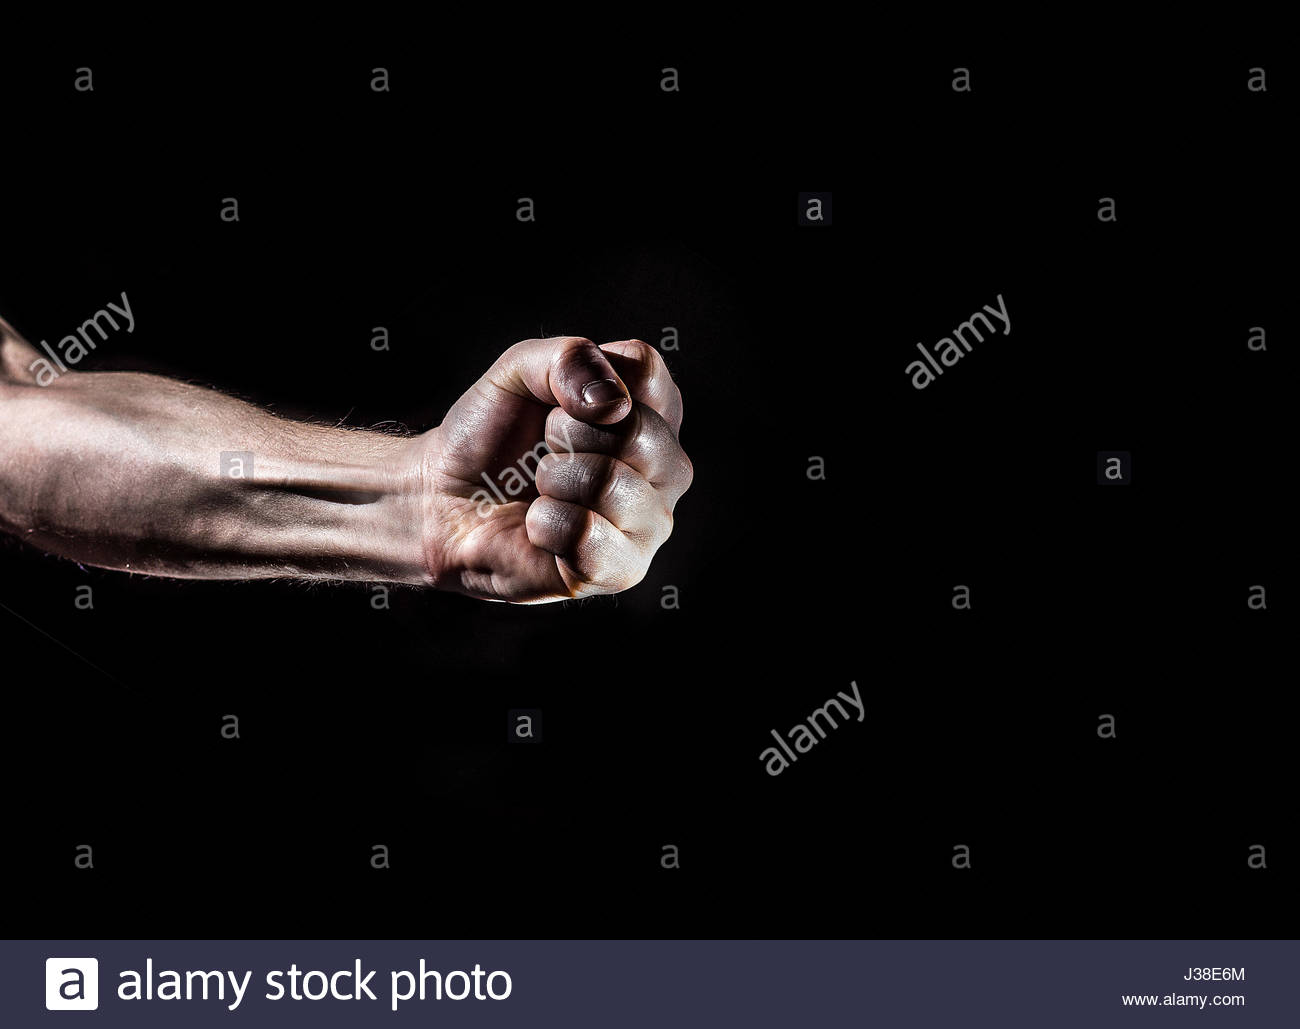 strong male man raised fist on a black background power protest 1300x1029